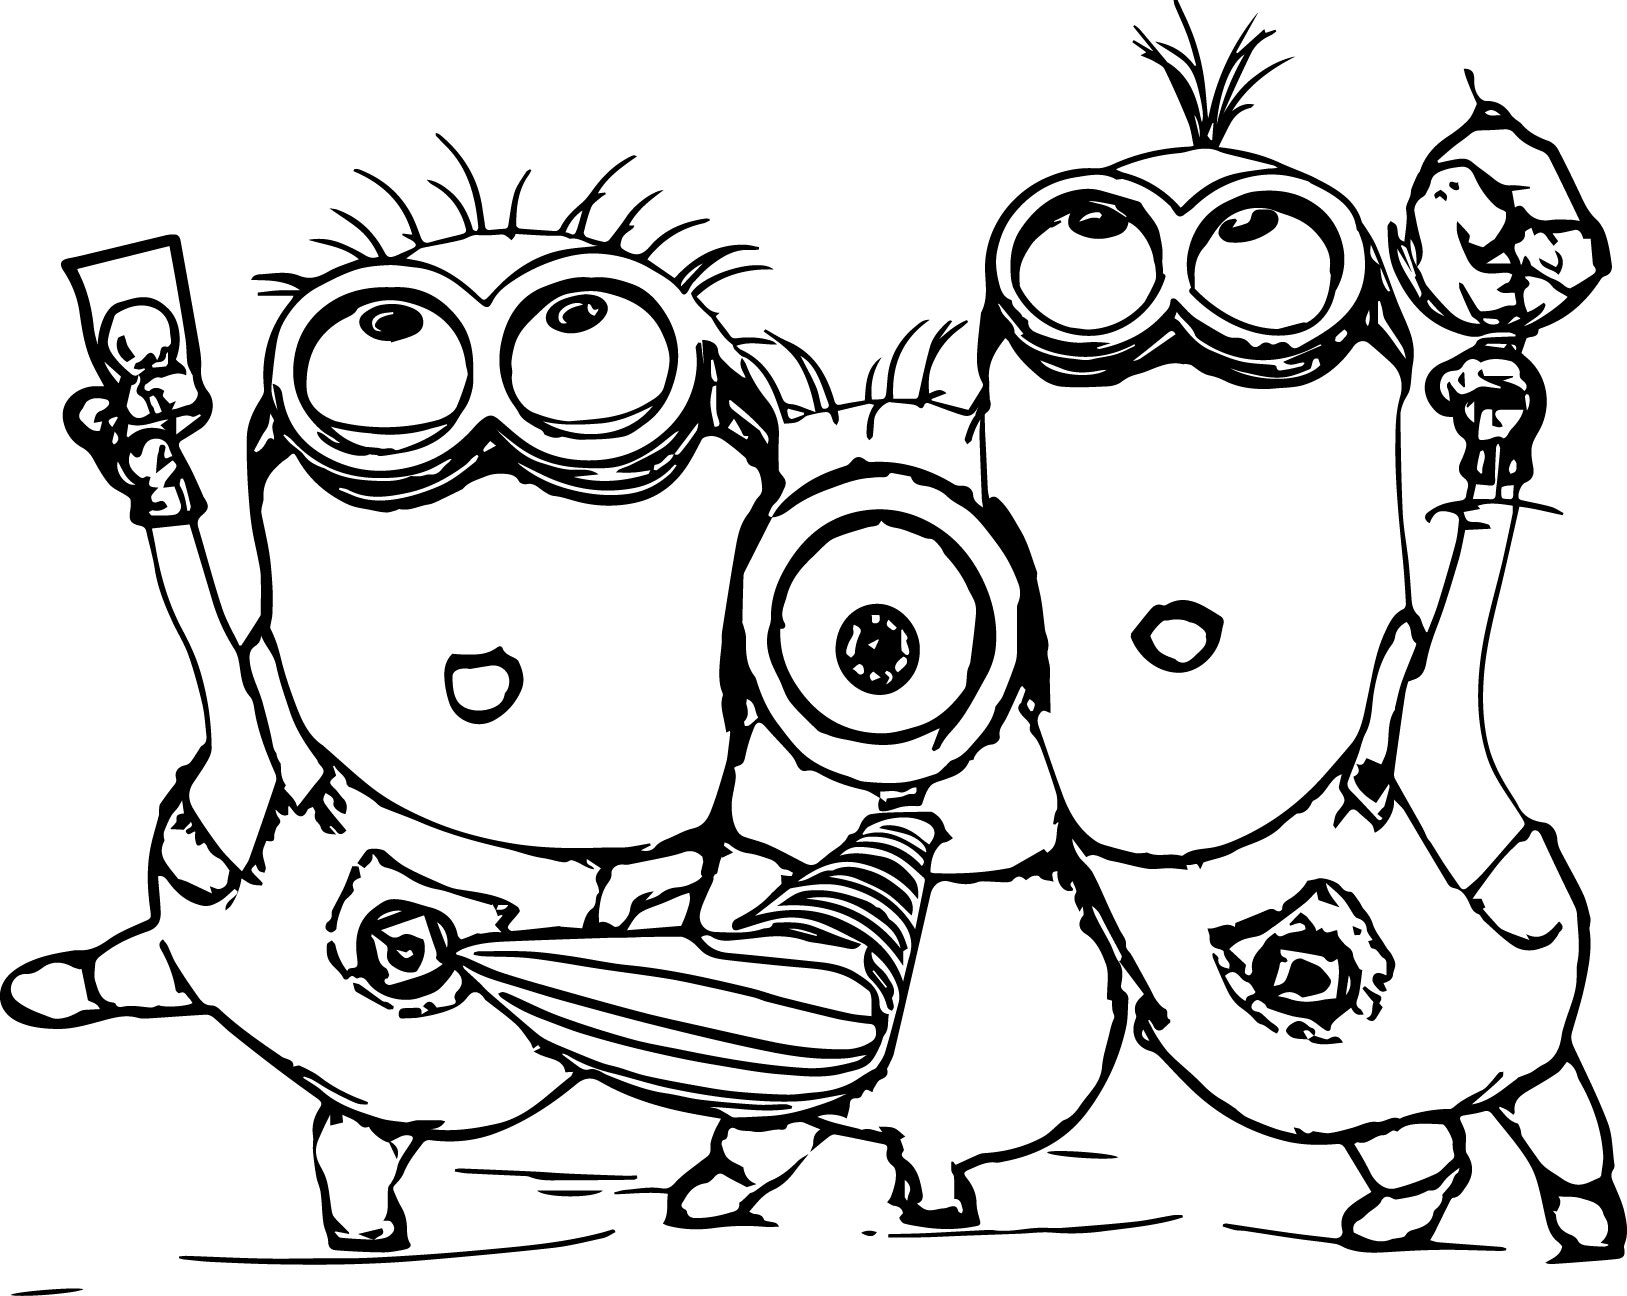 coloring print pages minions - photo#23